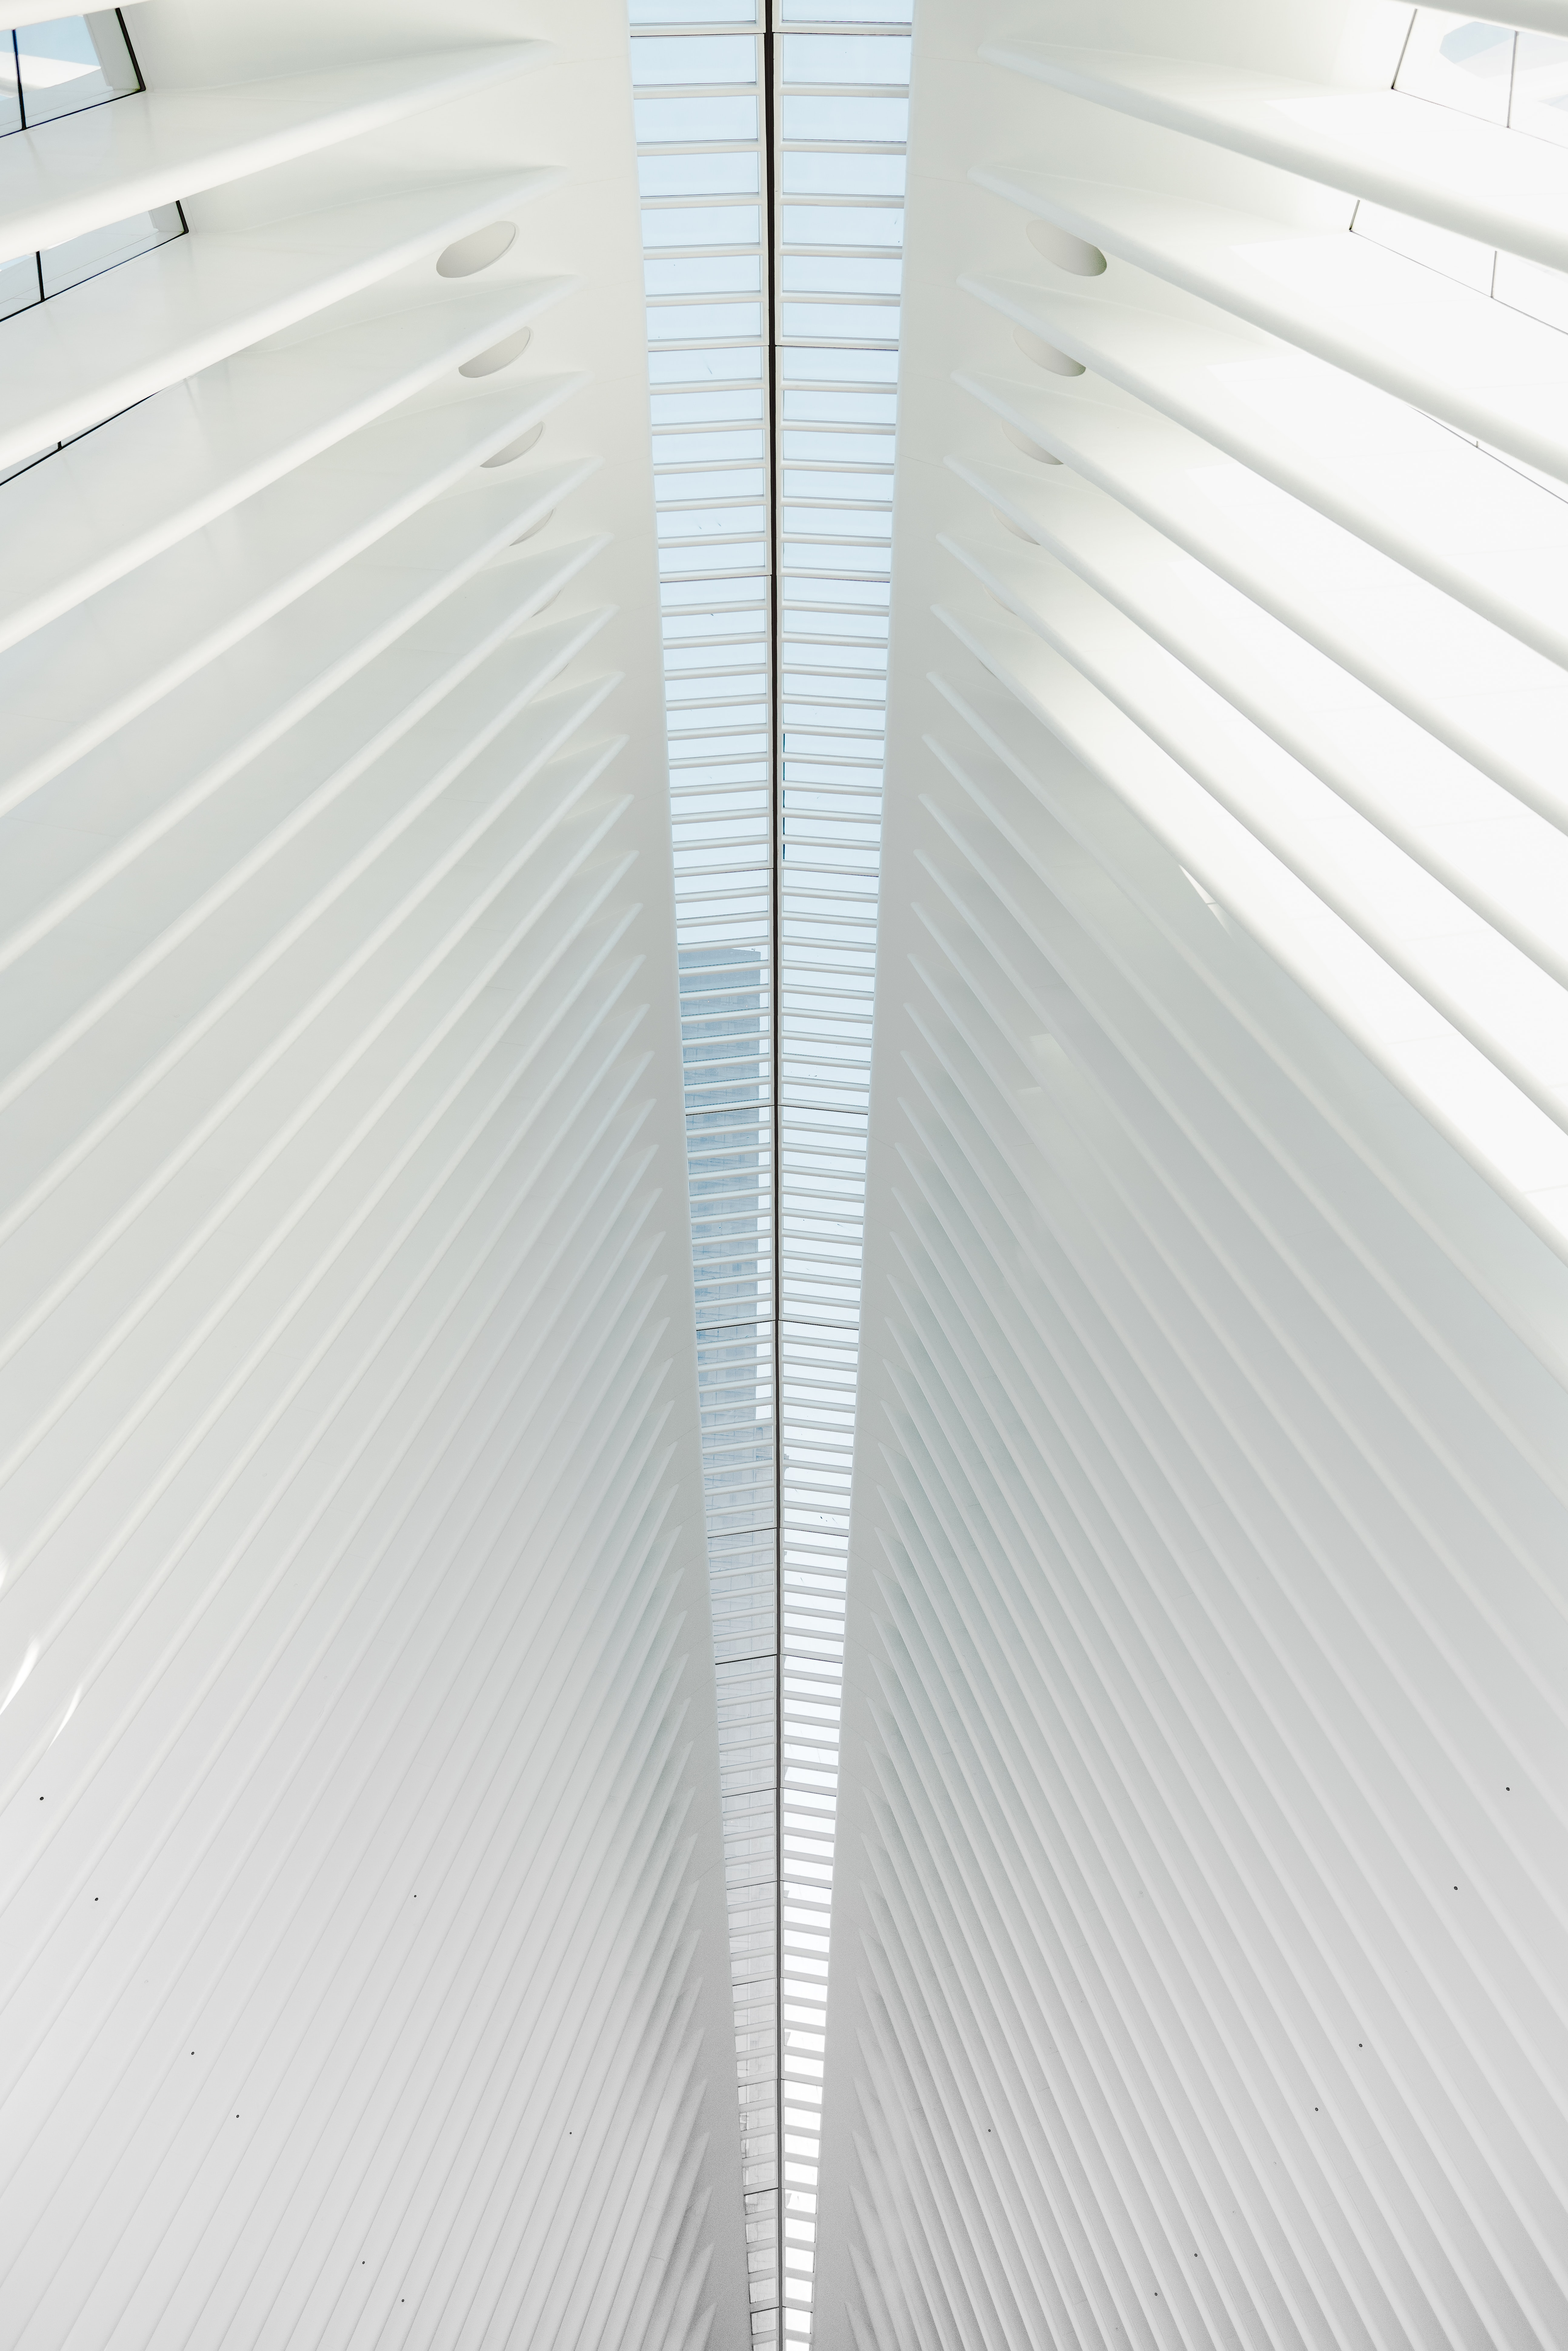 Symmetric white architecture in the shape of window shutters